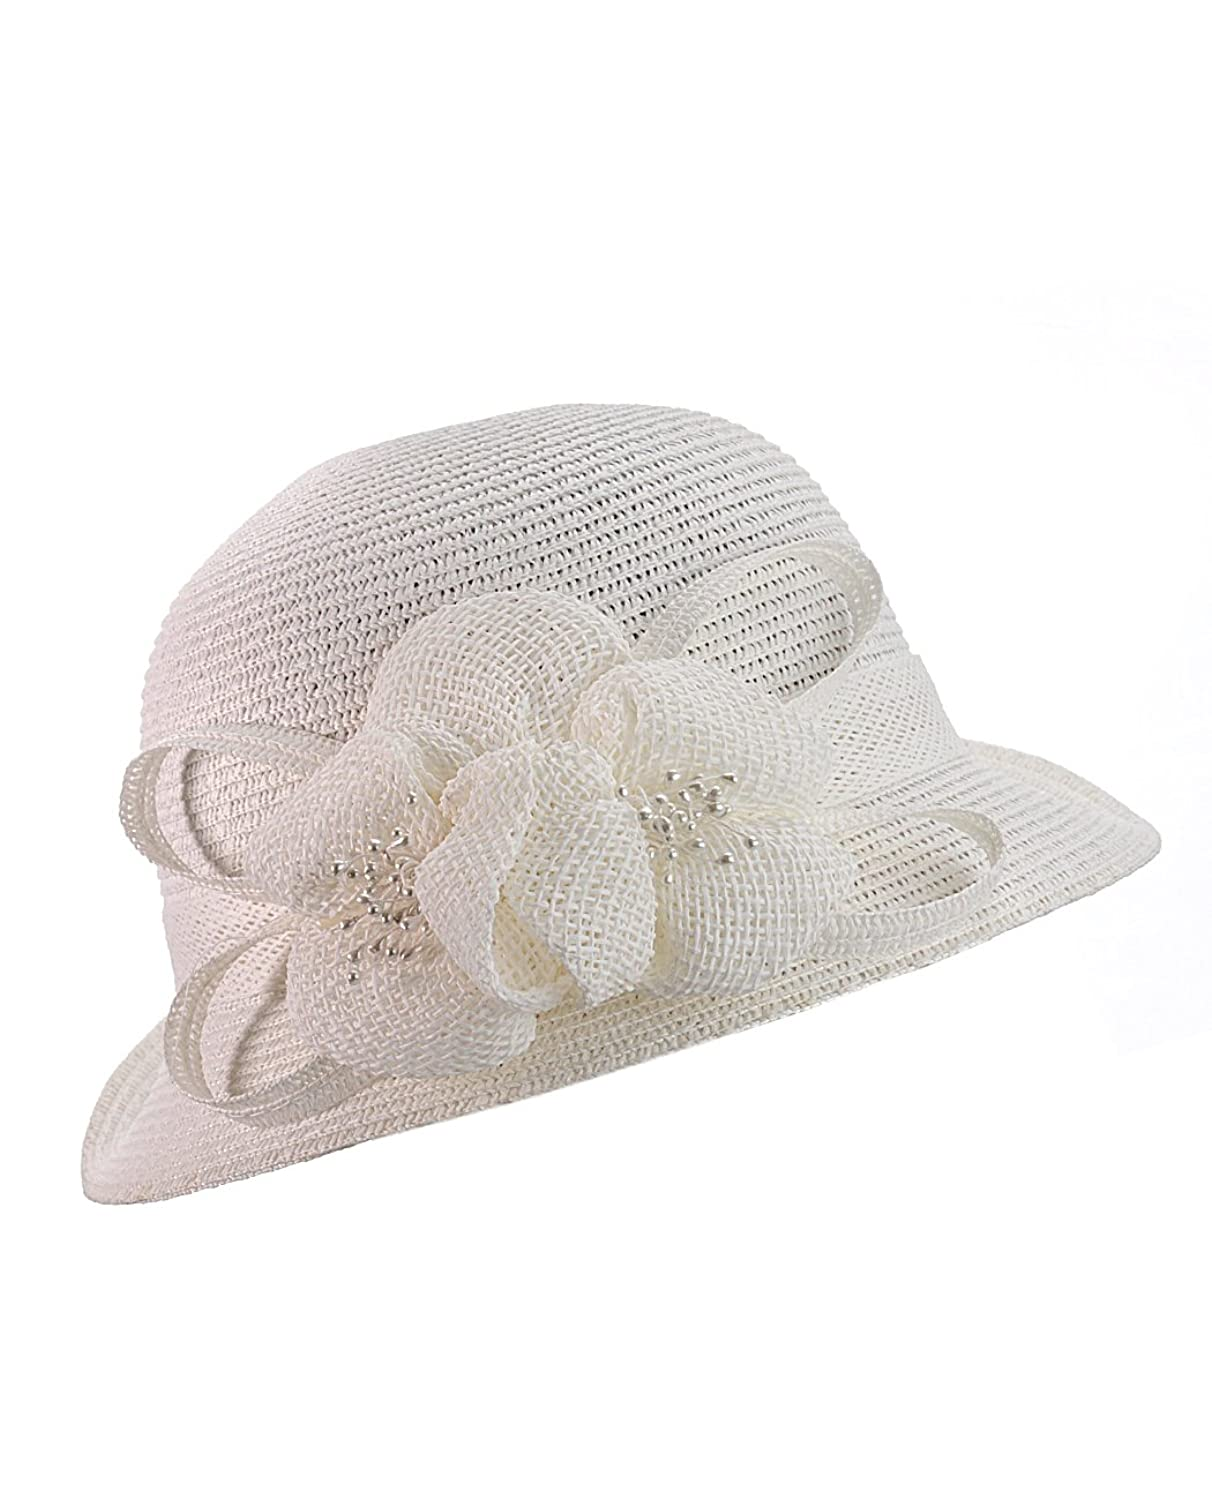 Cloche Bucket Hat w/ Woven Flower & Ribbon Accent $10.74 AT vintagedancer.com